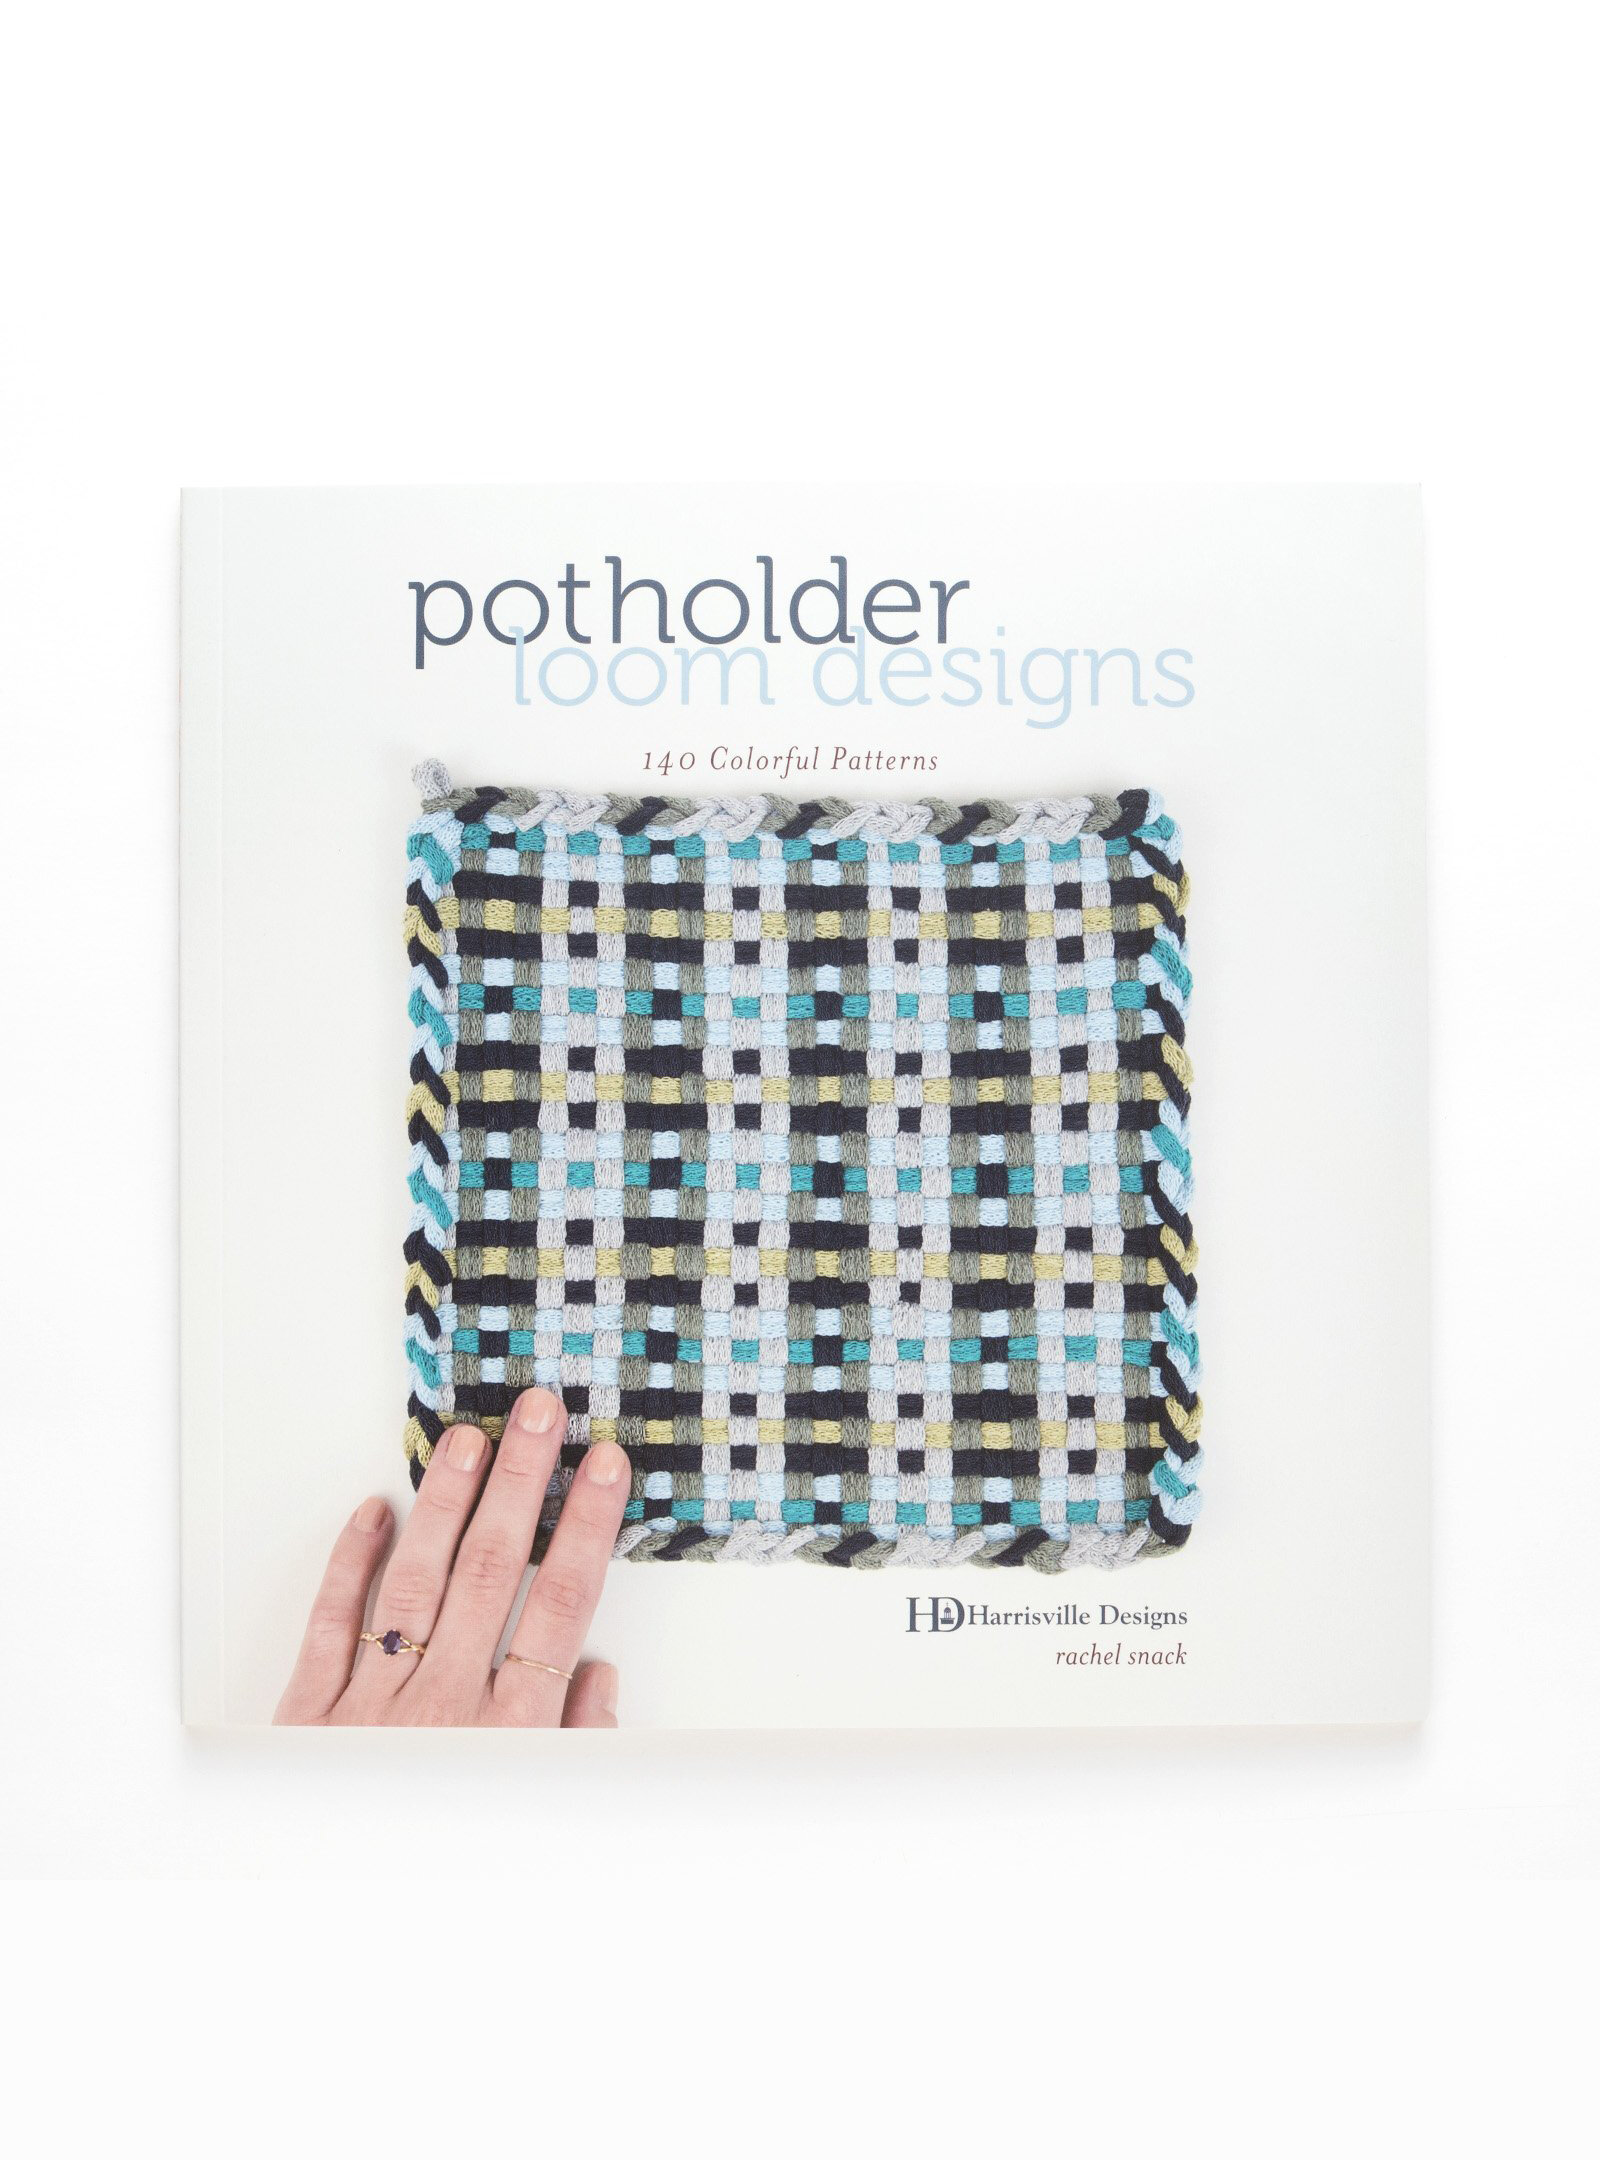 potholder loom designs: 140 colorful patterns   Unplug yourself—and any children in your life—and enjoy the art of weaving at the small-scale level with the fun, accessible potholder loom. Familiar to many from their childhood, simple square potholder looms hold stretchy fabric loops that are woven to create practical gifts or handy trivets for your own kitchen.